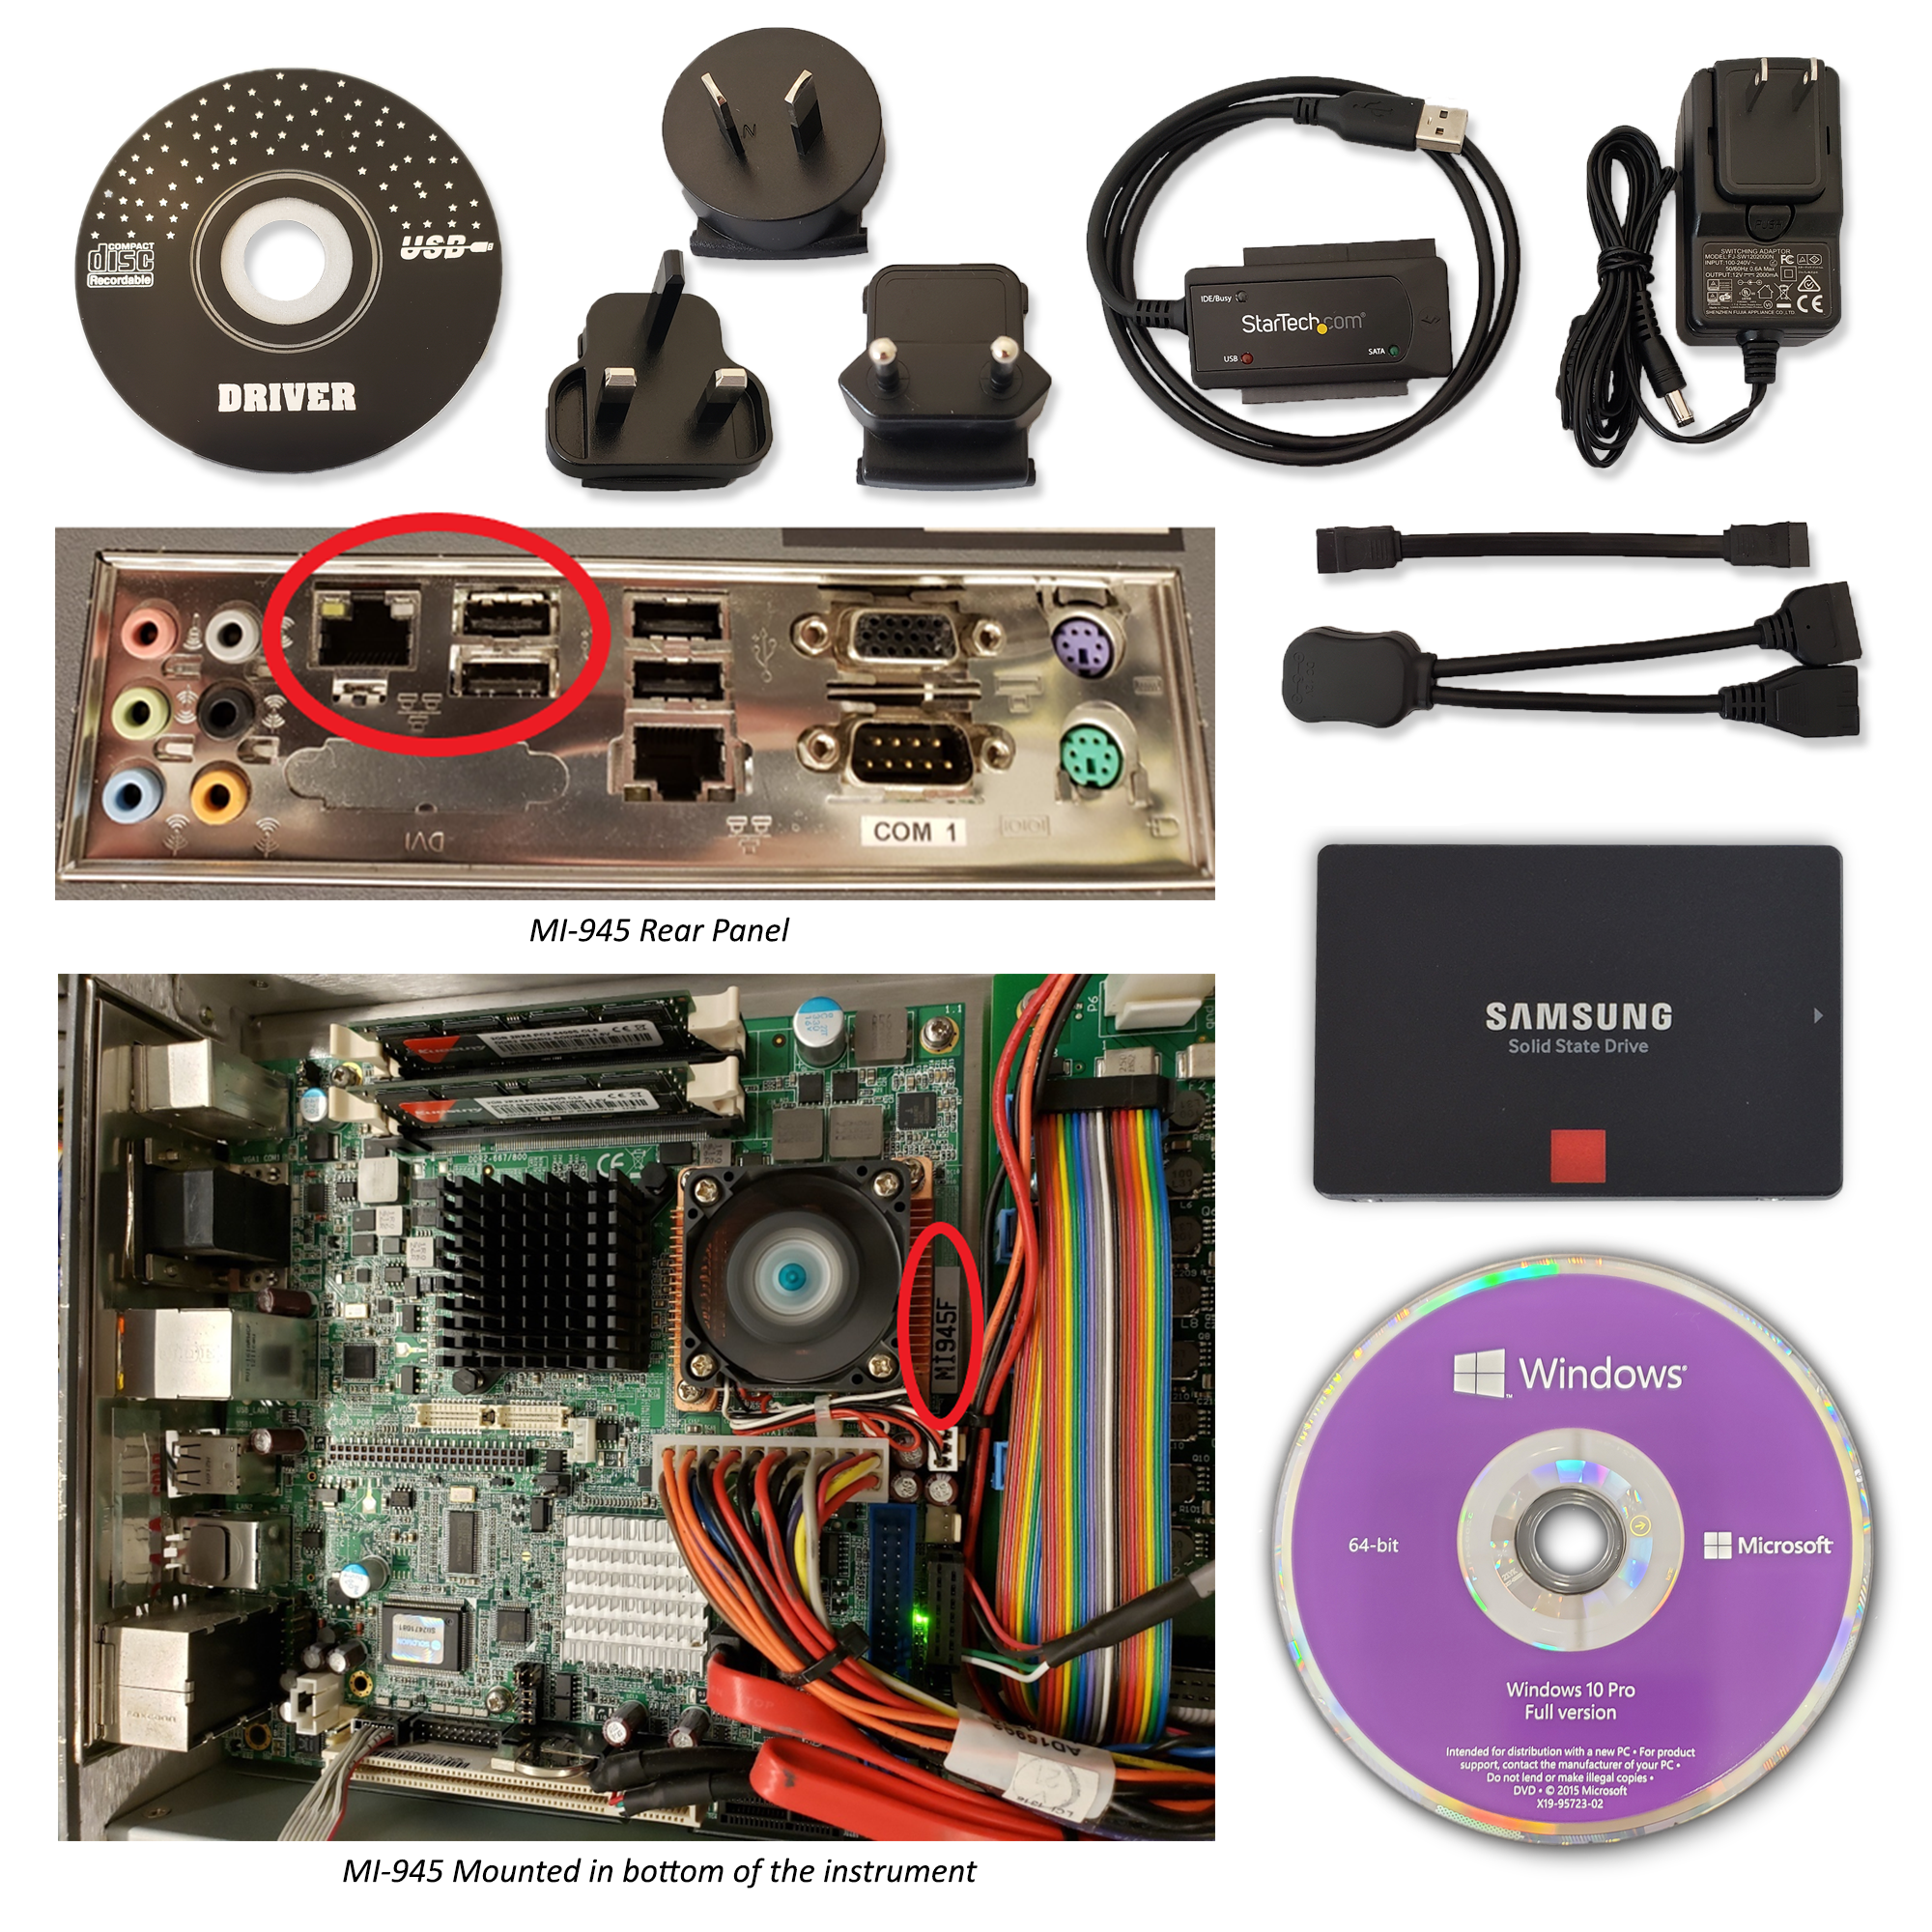 S3059: Windows 10 Upgrade Kit for MI945 Motherboard